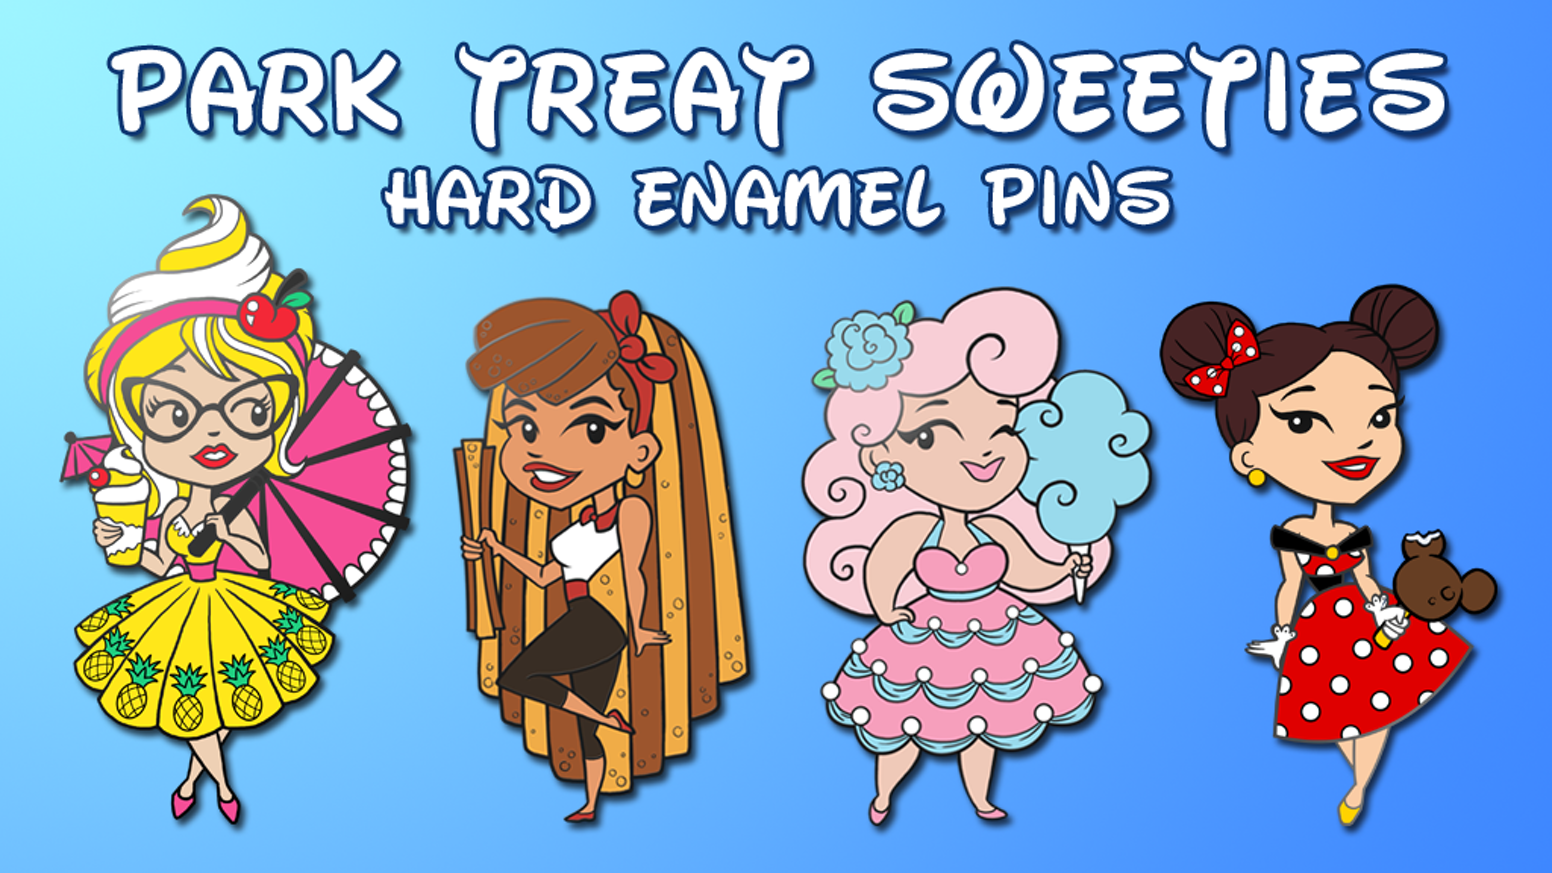 Creating hard enamel pins based on sweet park treats and dapper outfits!